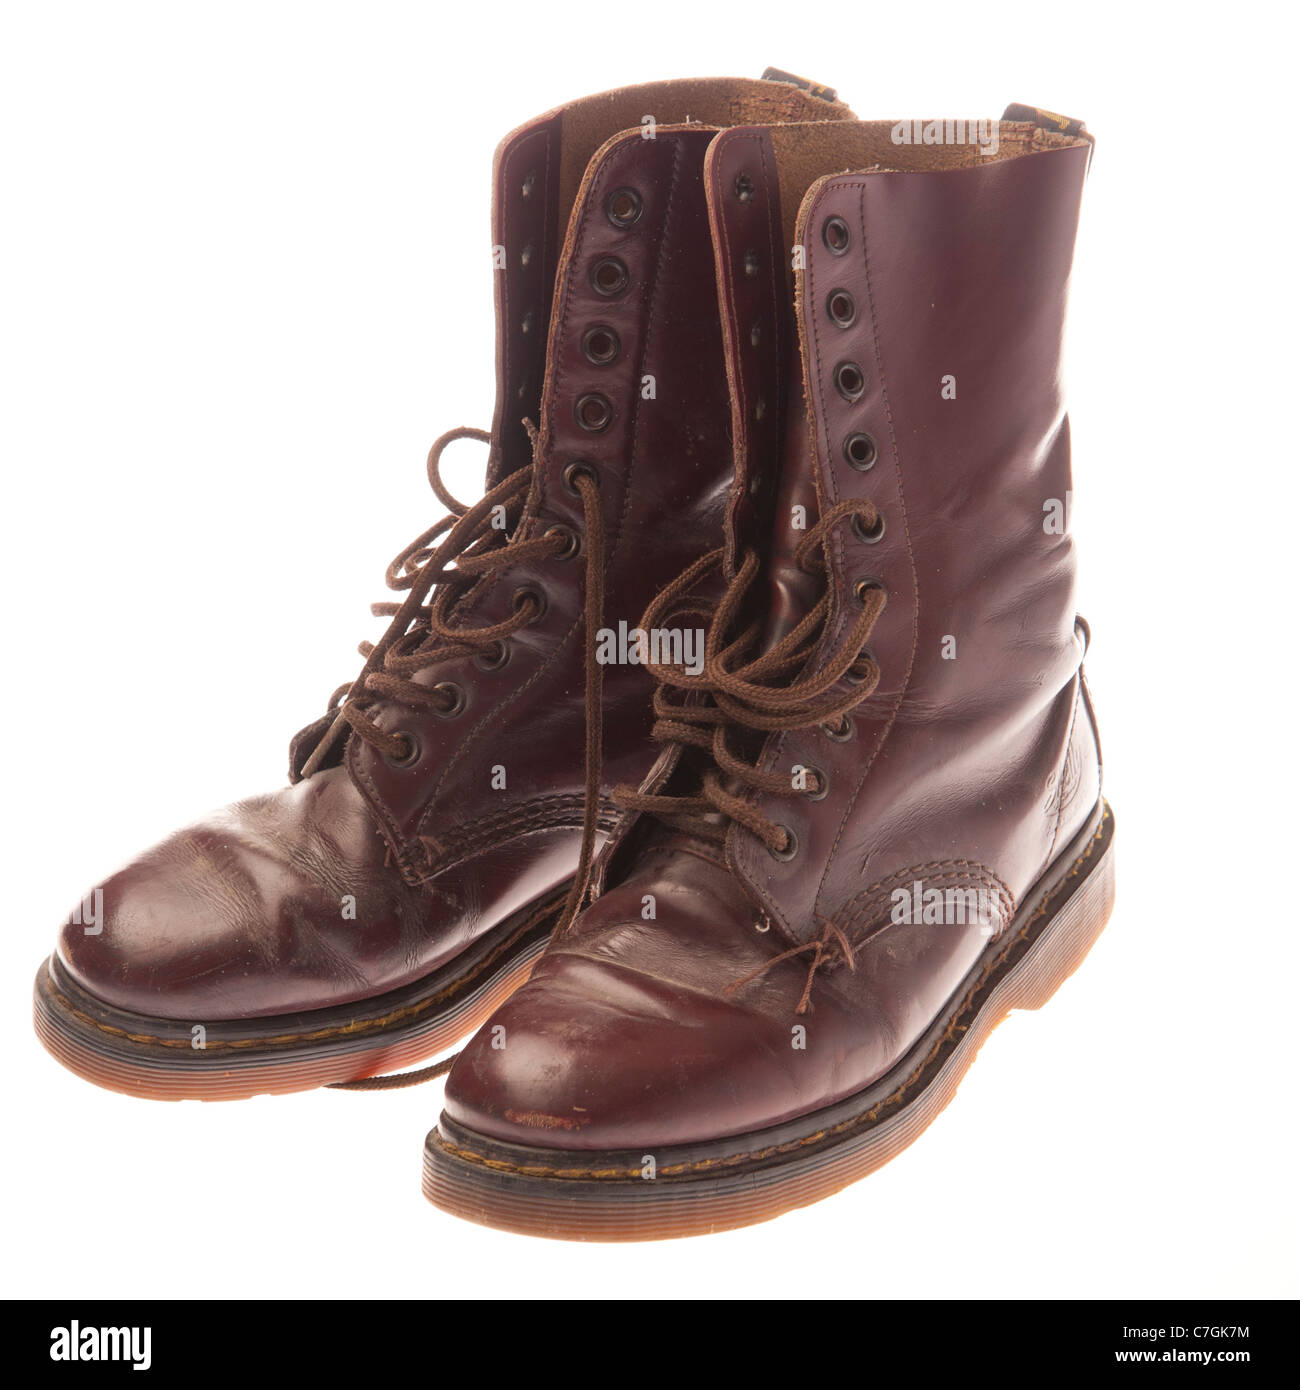 a pair of classic cherry red 10 eyelet DM Doc Martens Shelly AirWair women s  leather boots 496c52c72d